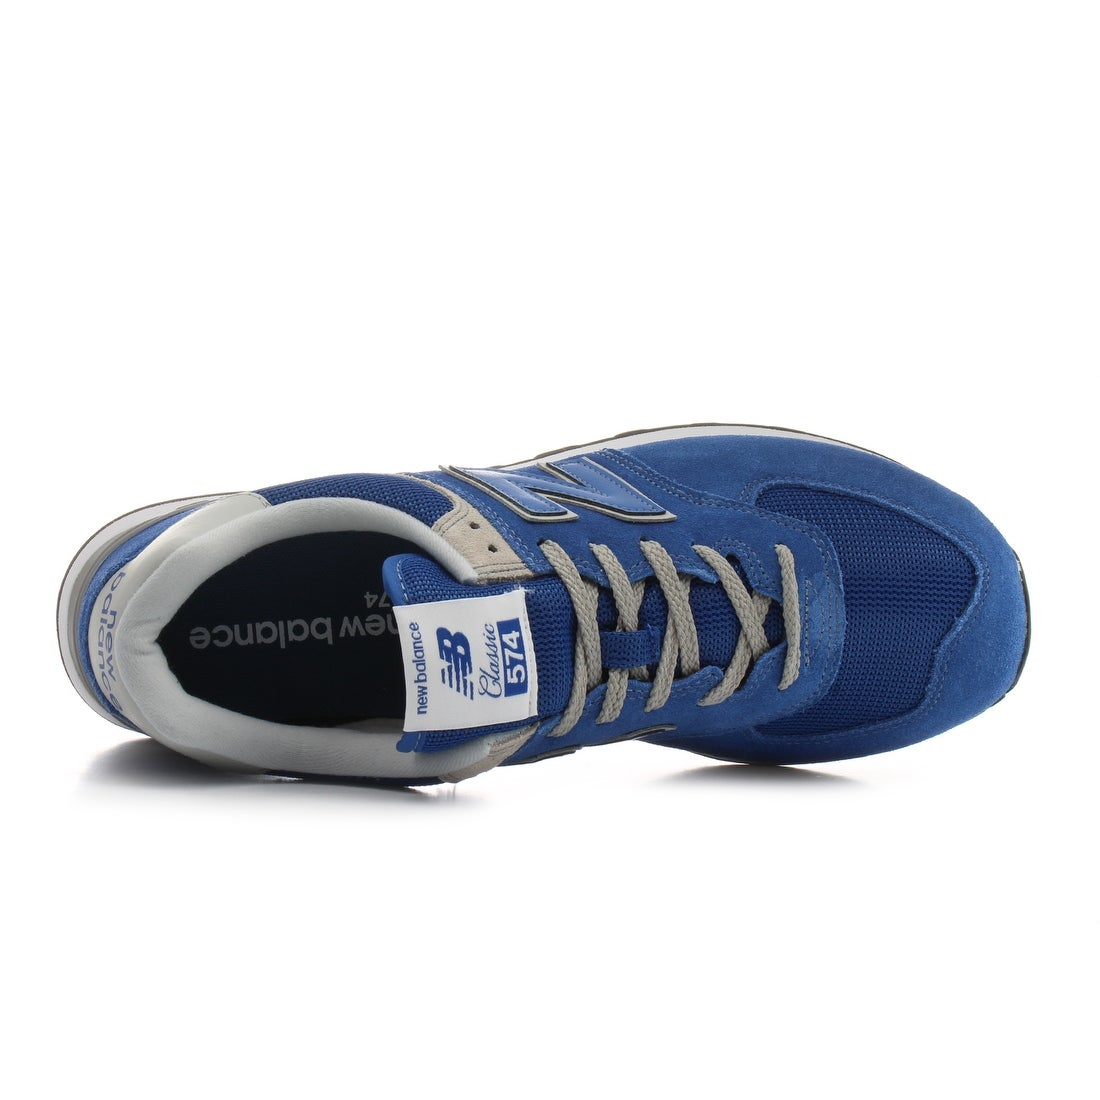 New Balance Mens ML574erb Classic Traditionnels Low Top Lace Up Walking Shoes